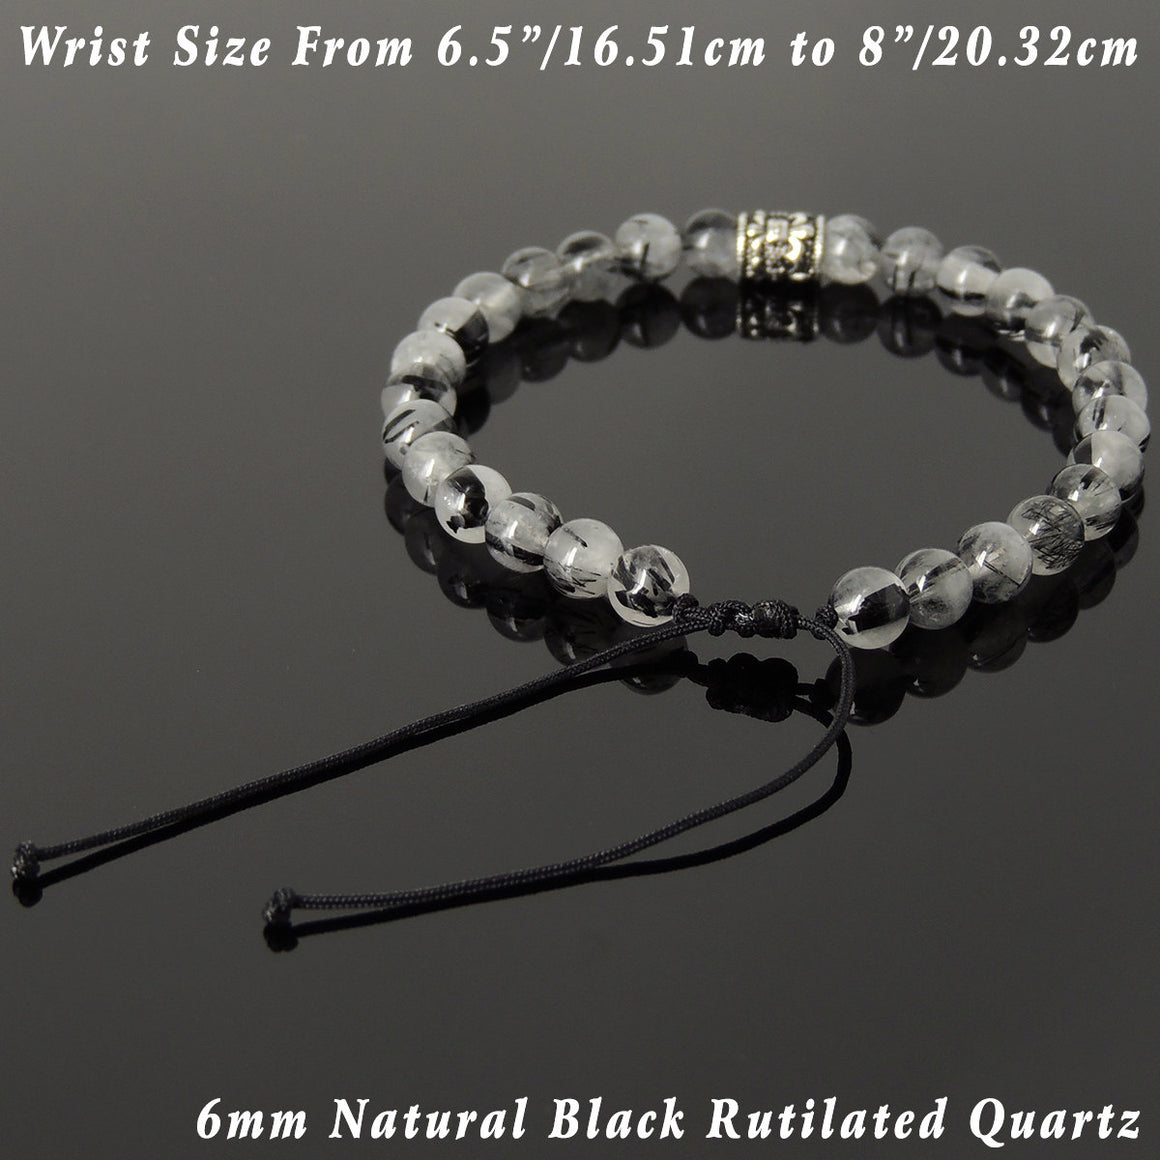 6mm Black Rutilated Quartz Adjustable Braided Gemstone Bracelet with S925 Sterling Silver Fleur de Lis Barrel Bead - Handmade by Gem & Silver BR1073